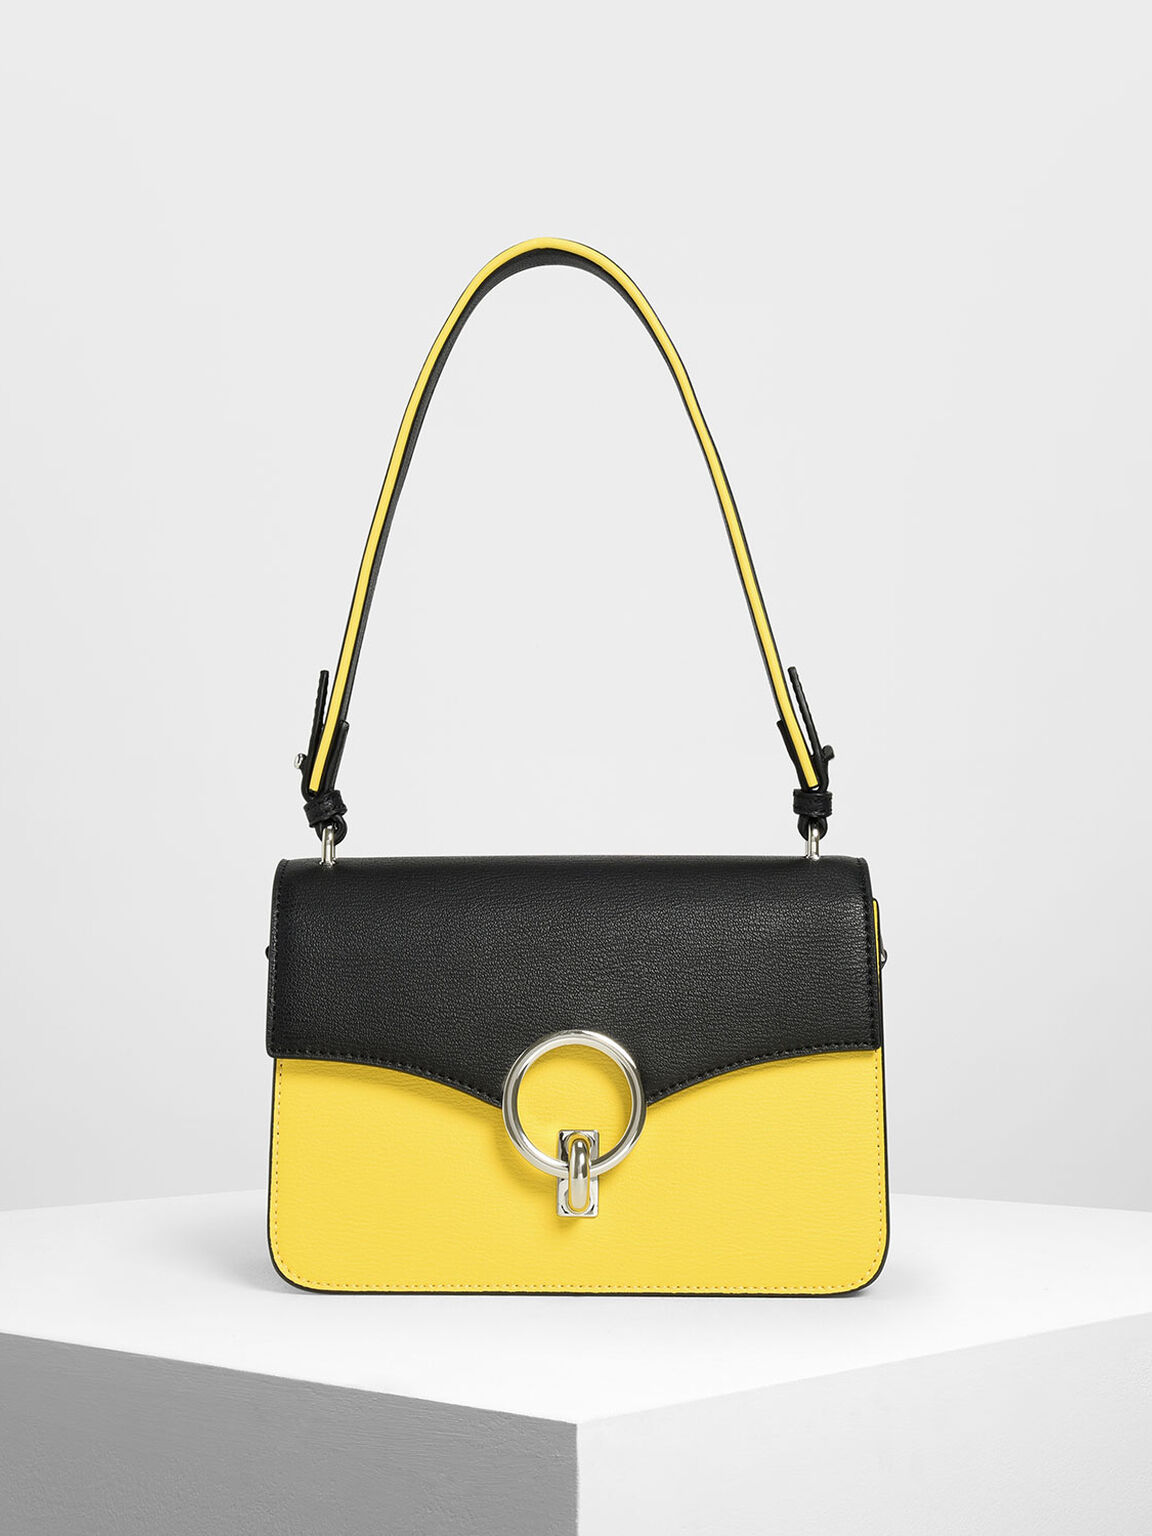 Chain Link Shoulder Bag, Yellow, hi-res